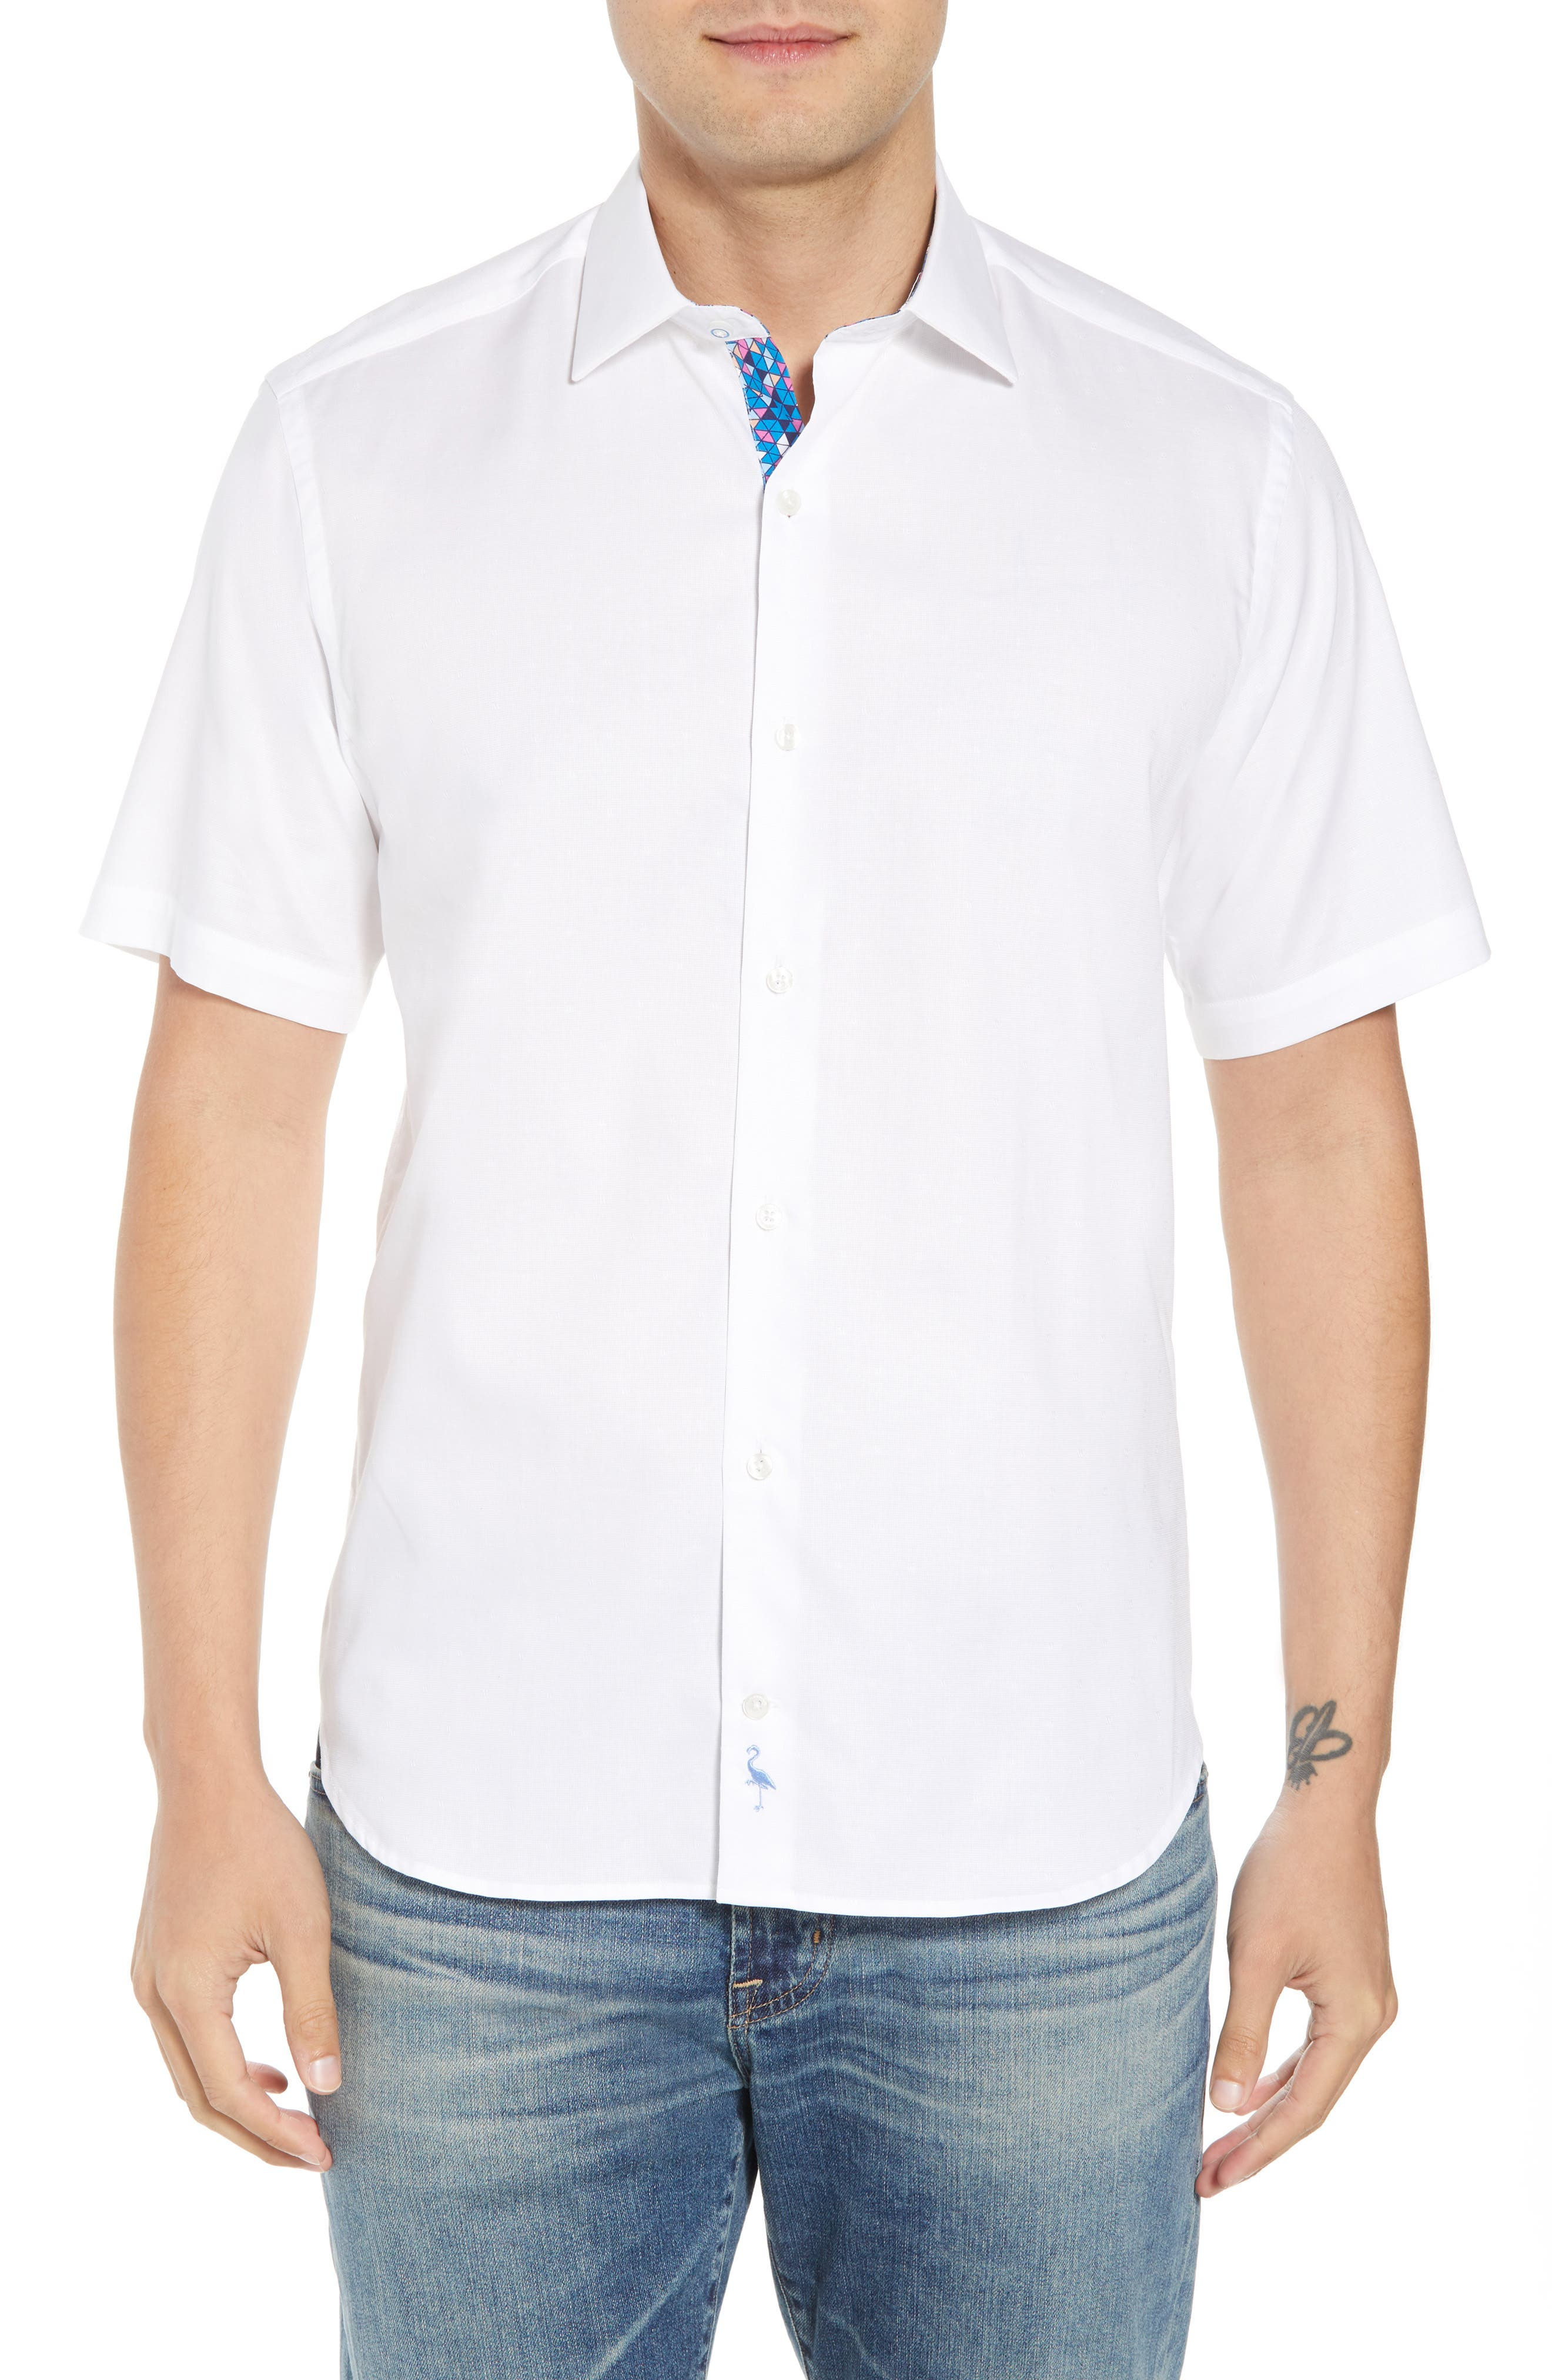 Clearance Online Official Site TailorByrd Arnie Regular Fit Sport Shirt Clearance Authentic Popular Great Deals Cheap Online CUboZojuD